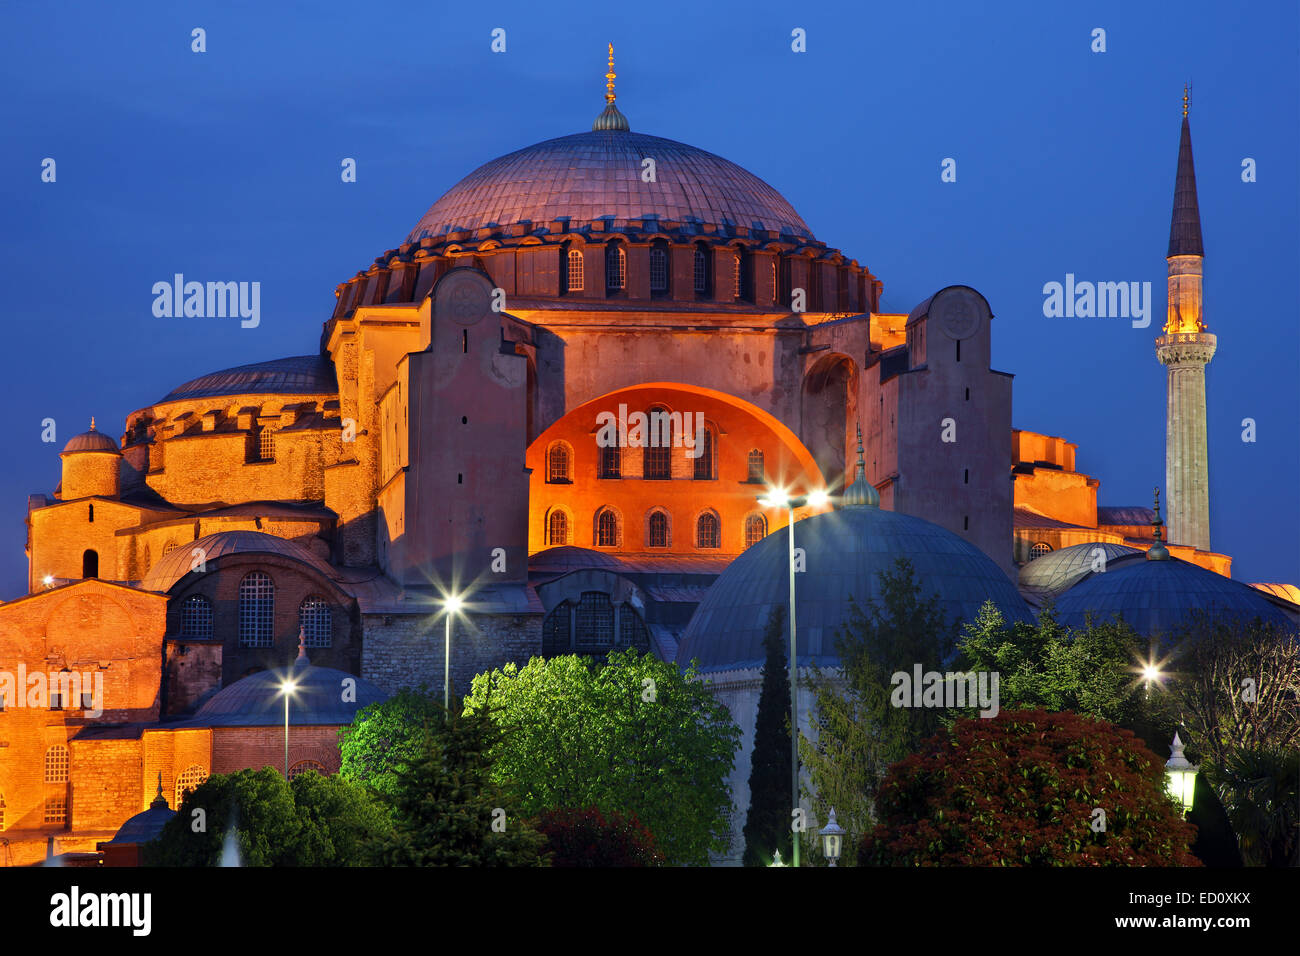 Hagia Sophia in the blue hour, Istanbul, Turkey - Stock Image